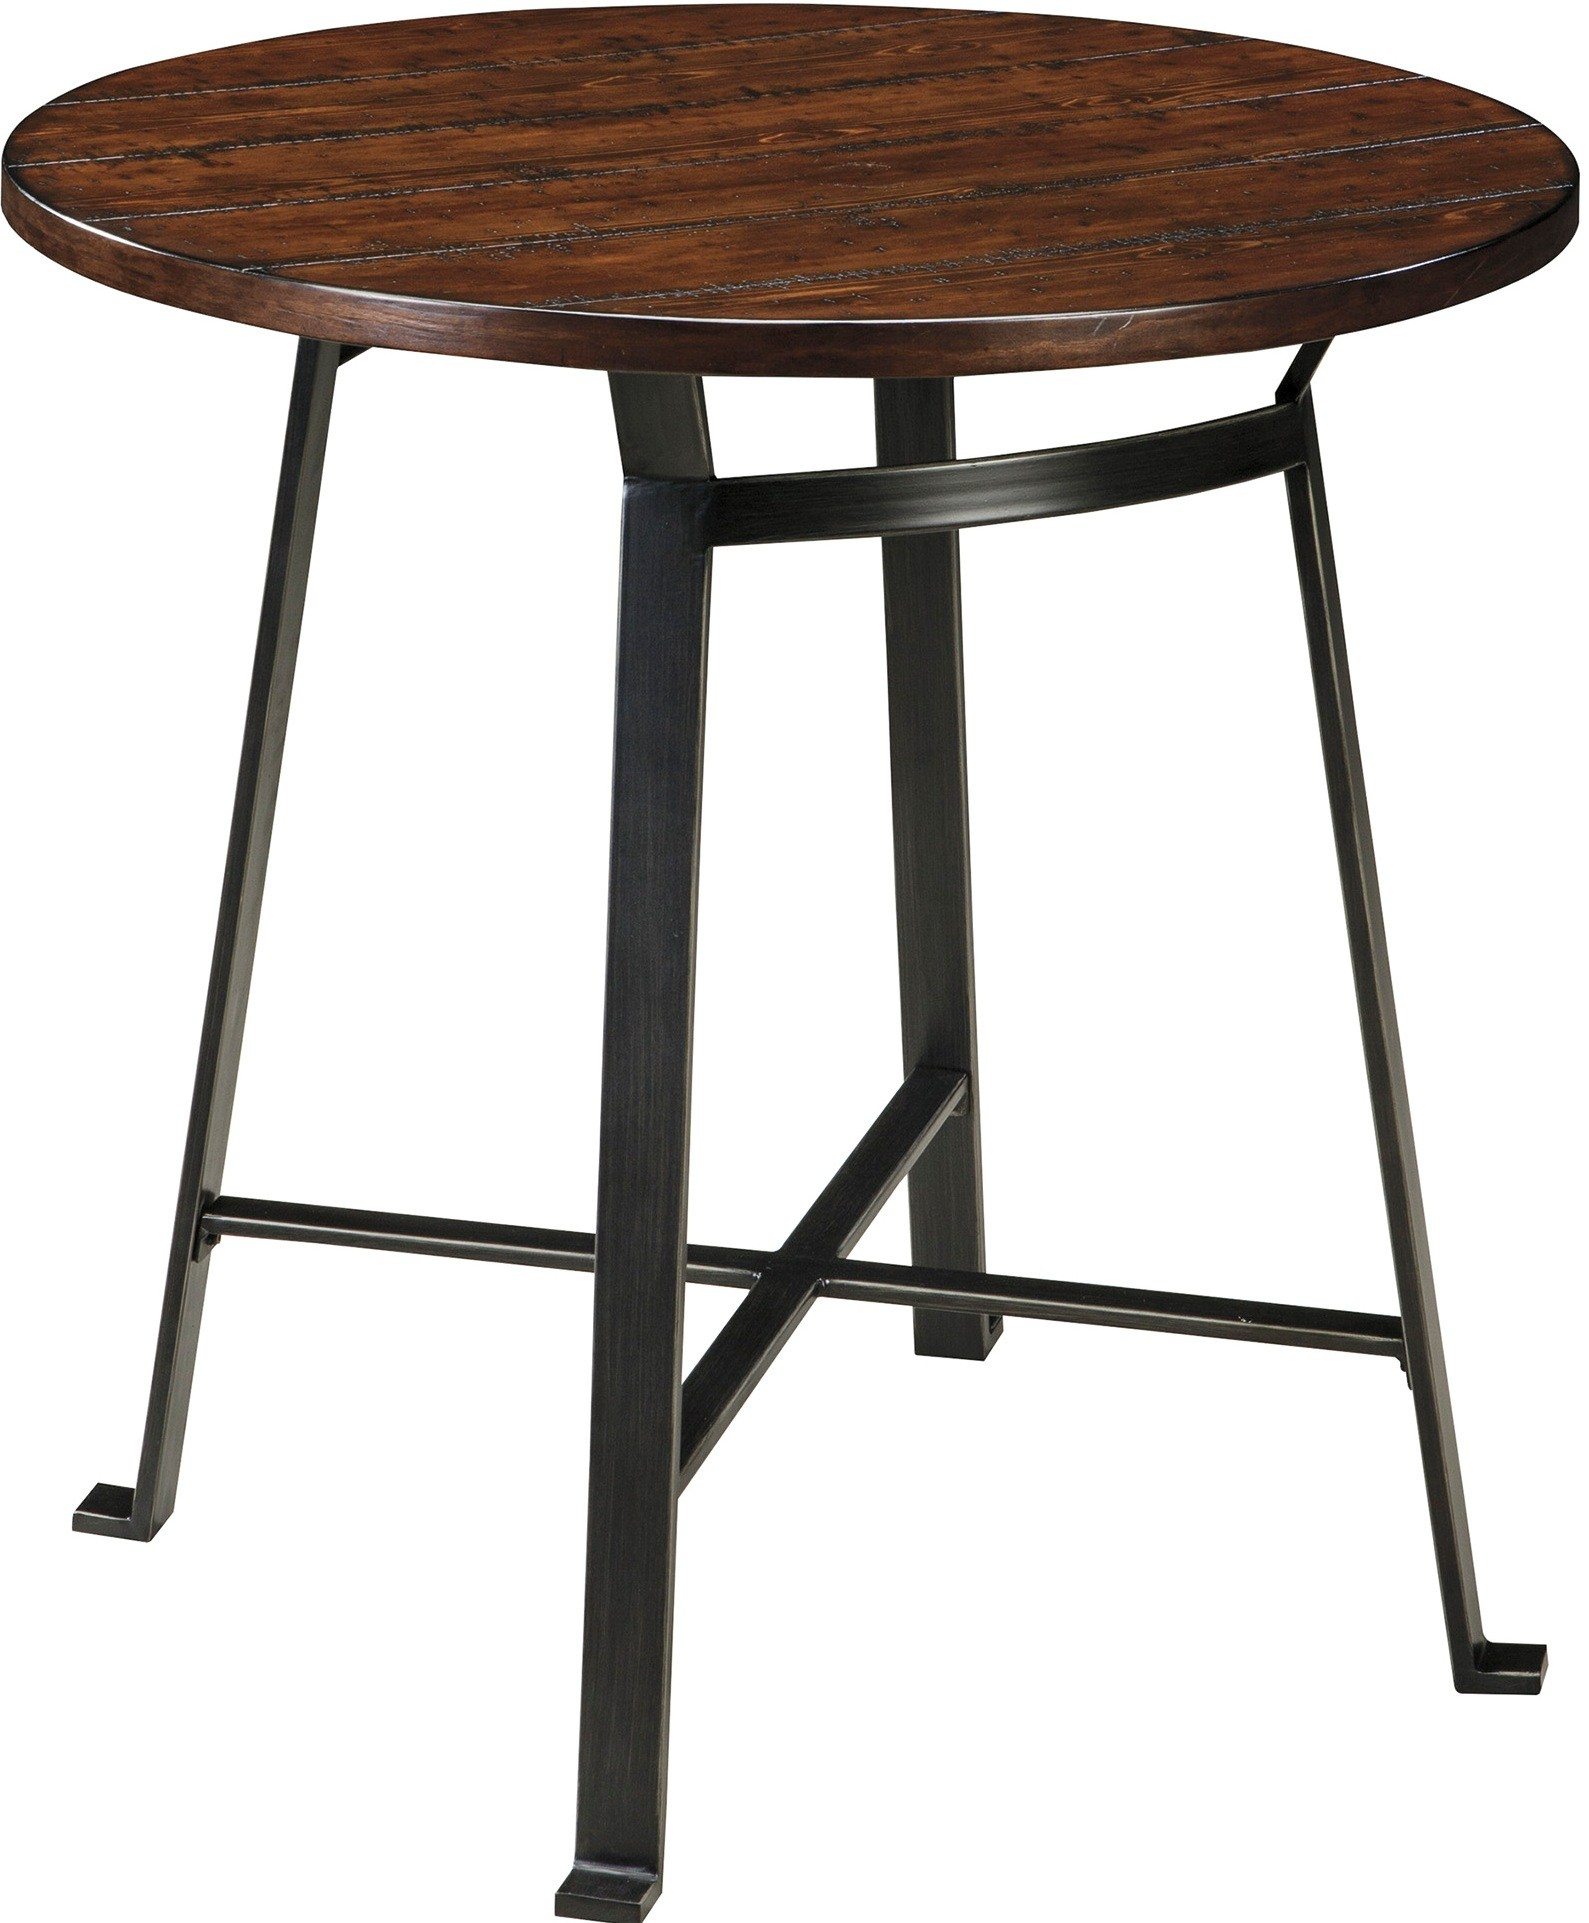 round dining room bar table from ashley d307 12 coleman furniture